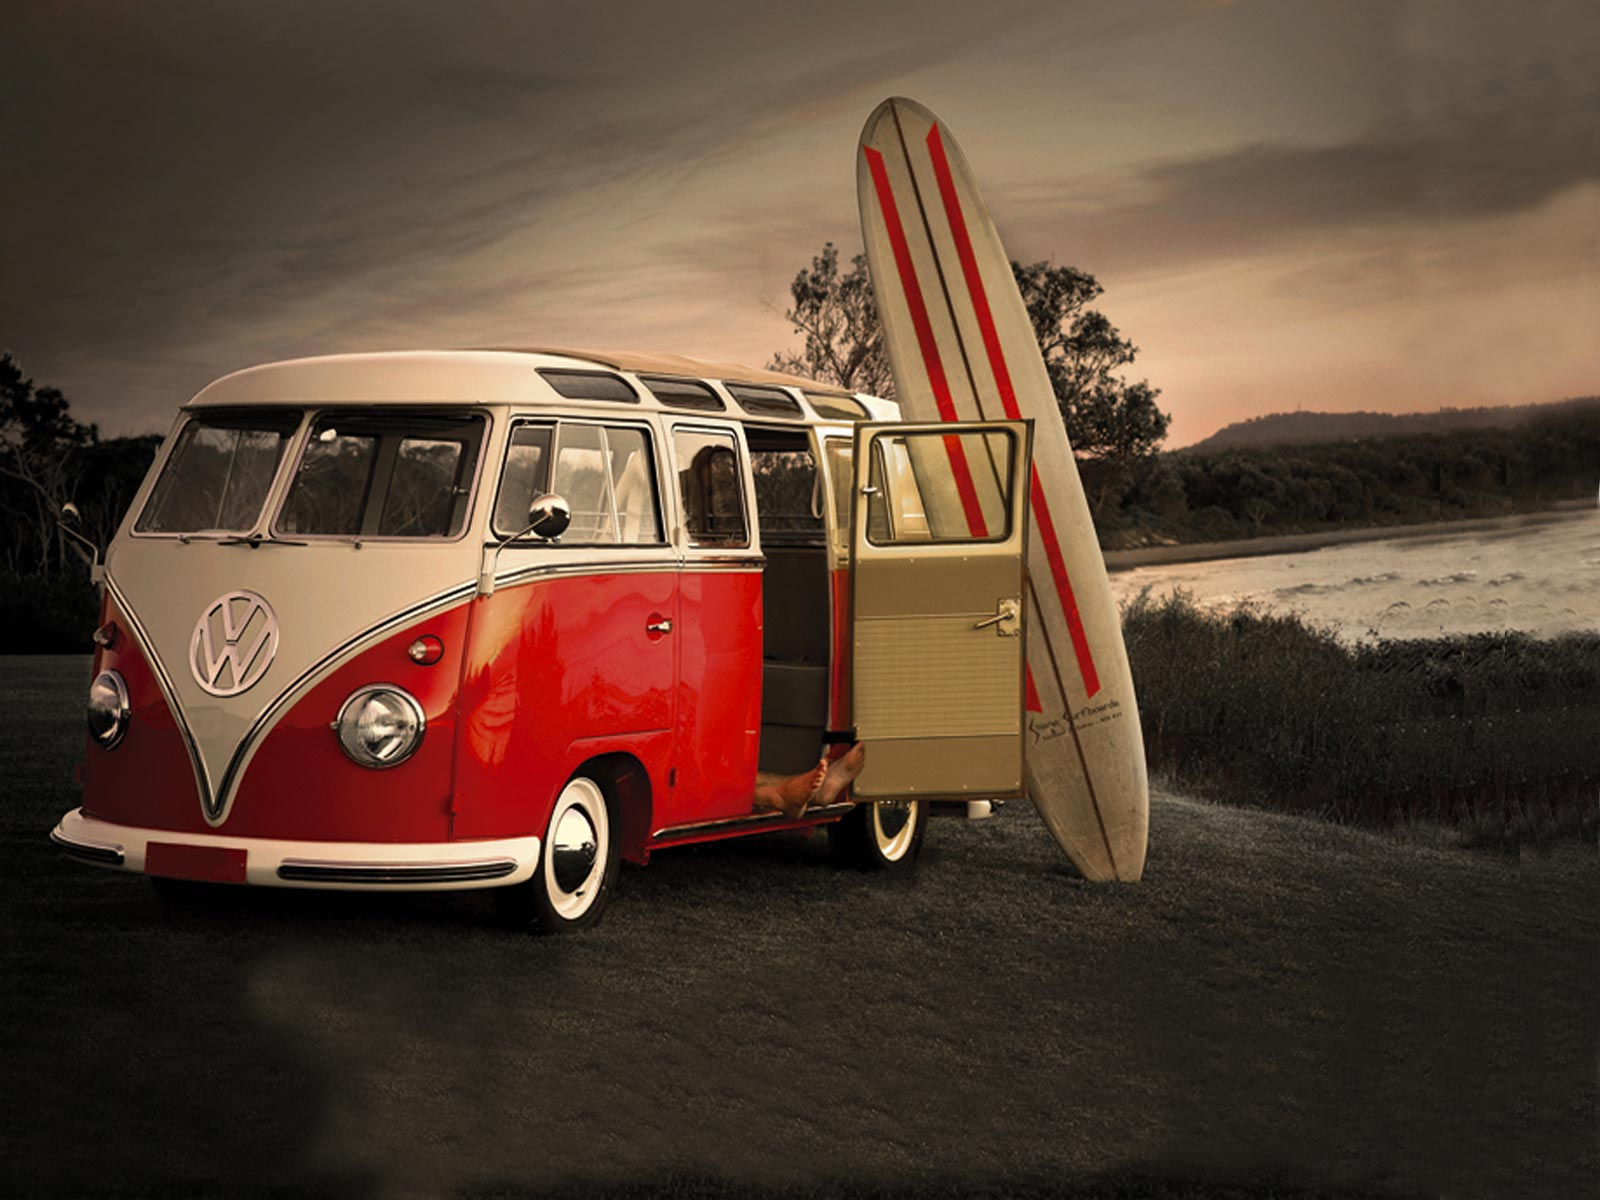 Surf And Old VW Wallpaper IPhone 10278 Wallpaper WallpaperLepi 1600x1200